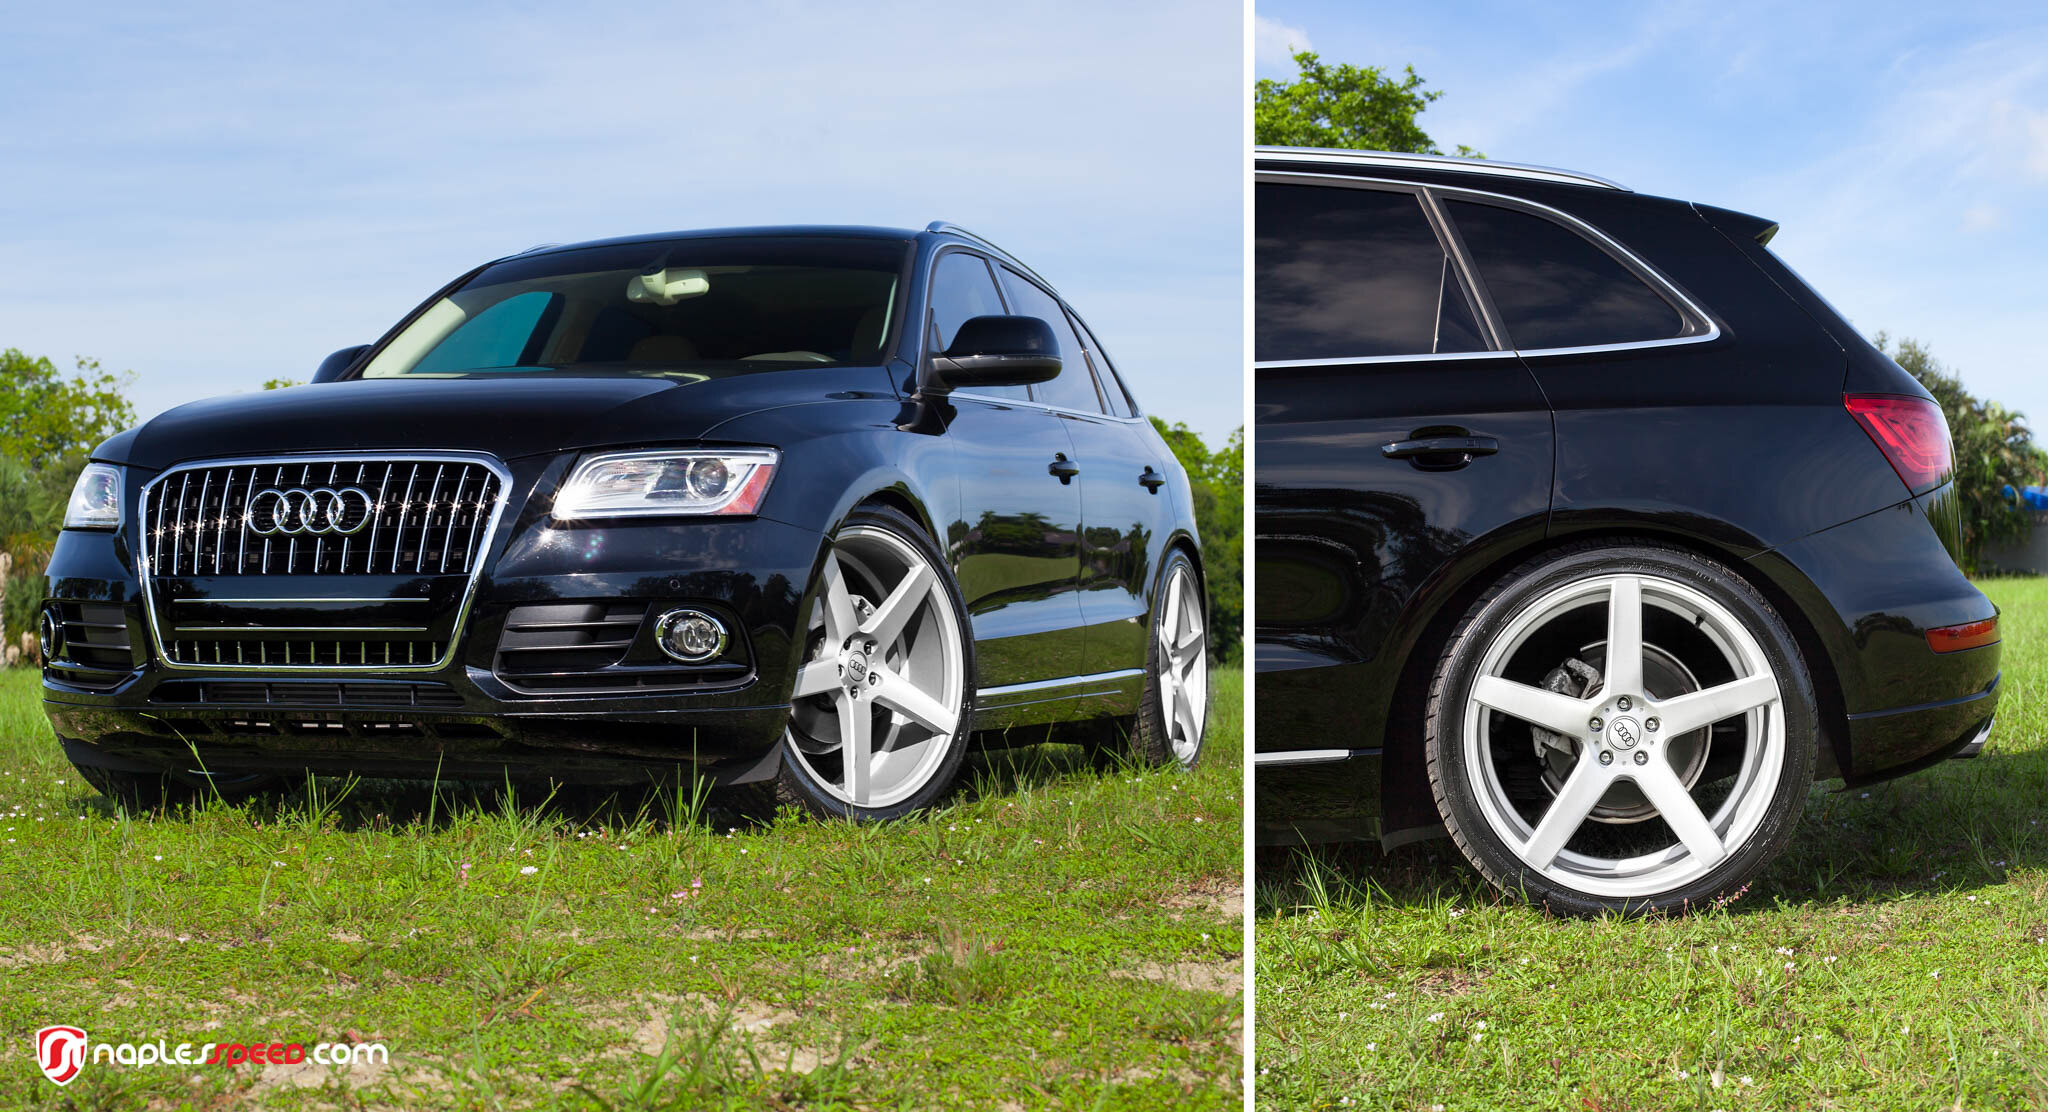 Audi Q5 on XO Luxury Miami Wheels by Naples Speed